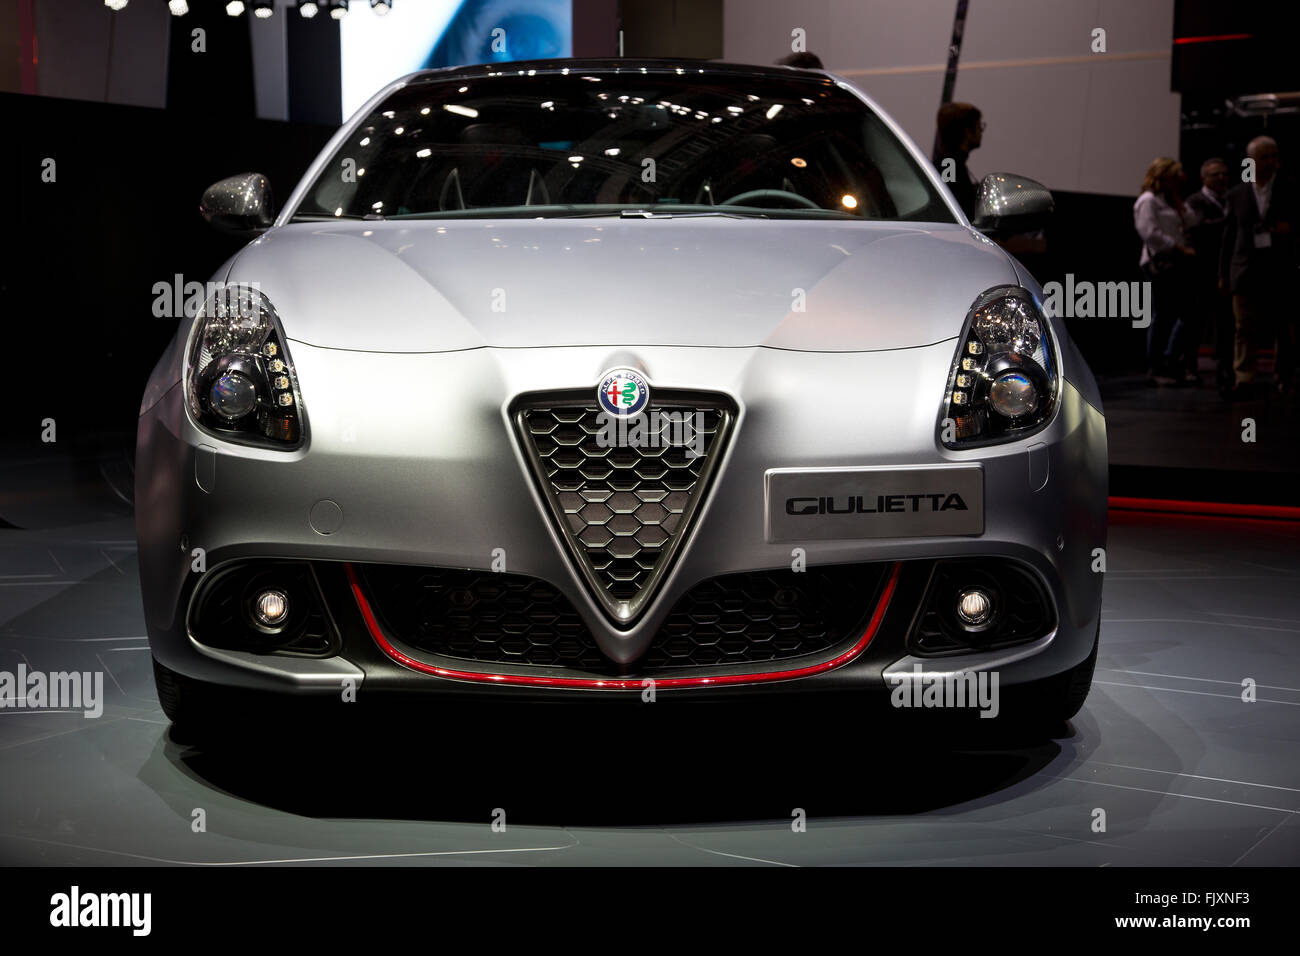 Alfa Romeo Giulietta hatchback car at the Geneva Motor Show 2016 - Stock Image